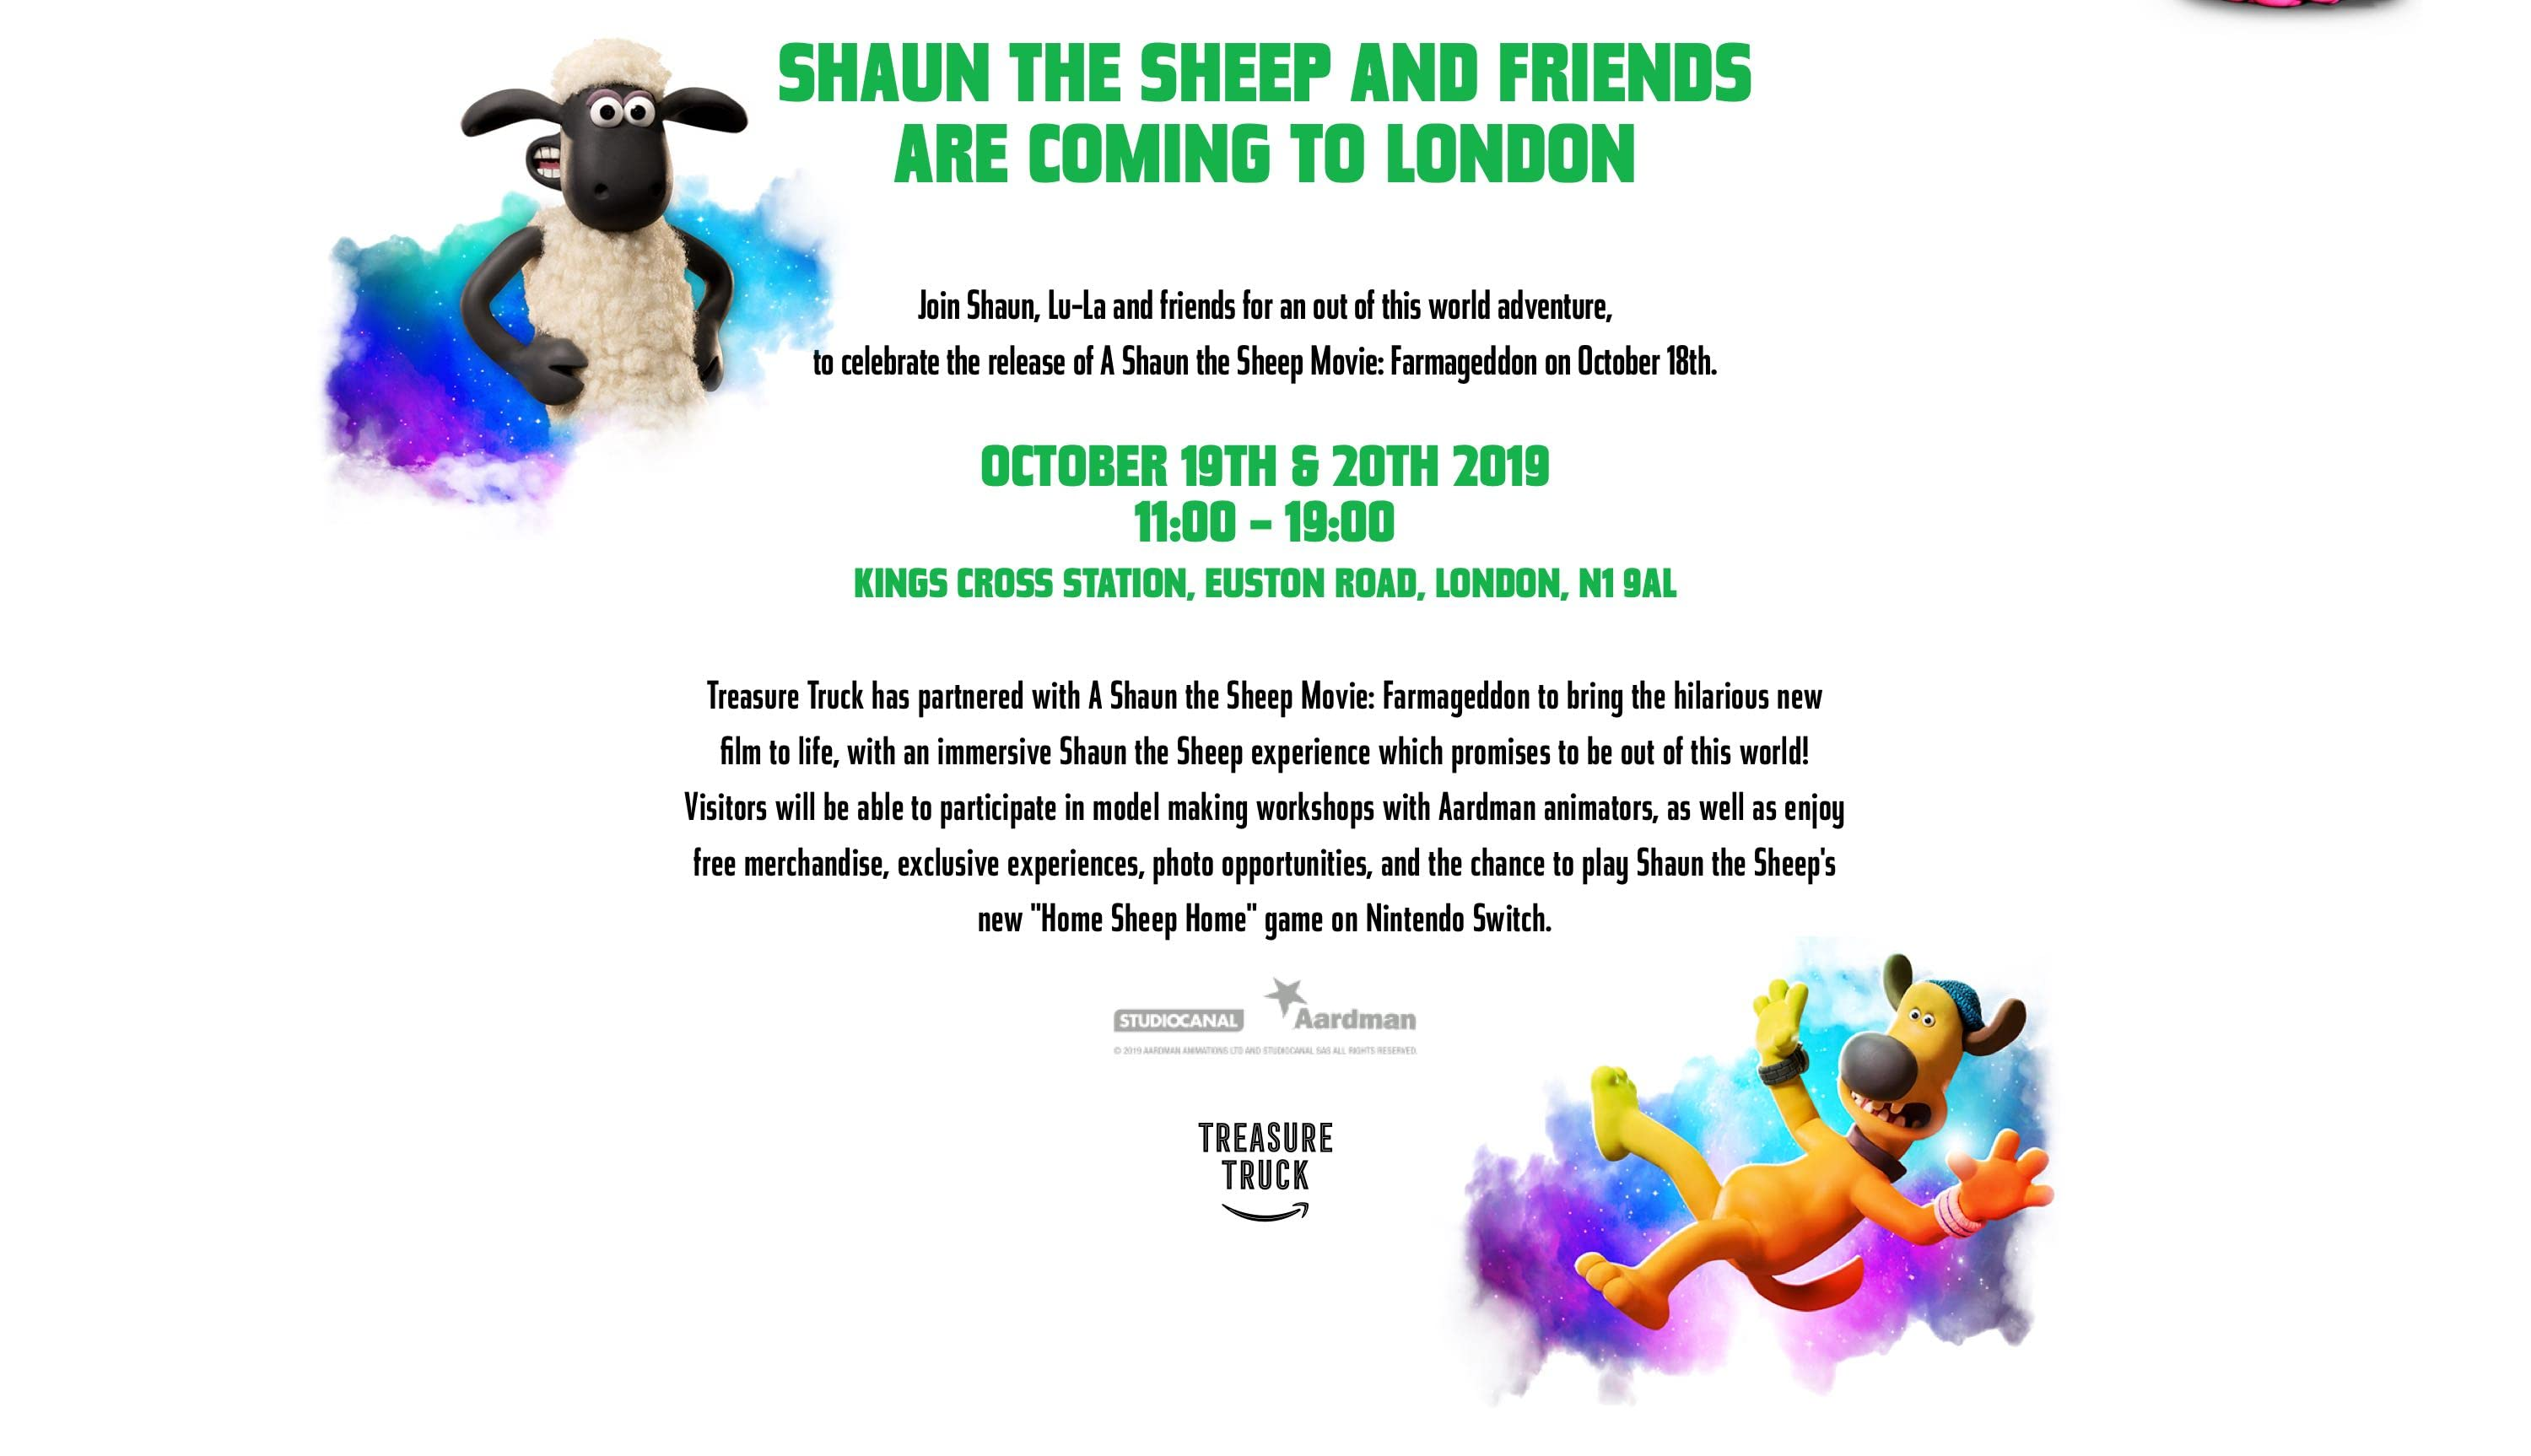 Shaun the Sheep and friends are coming to London.